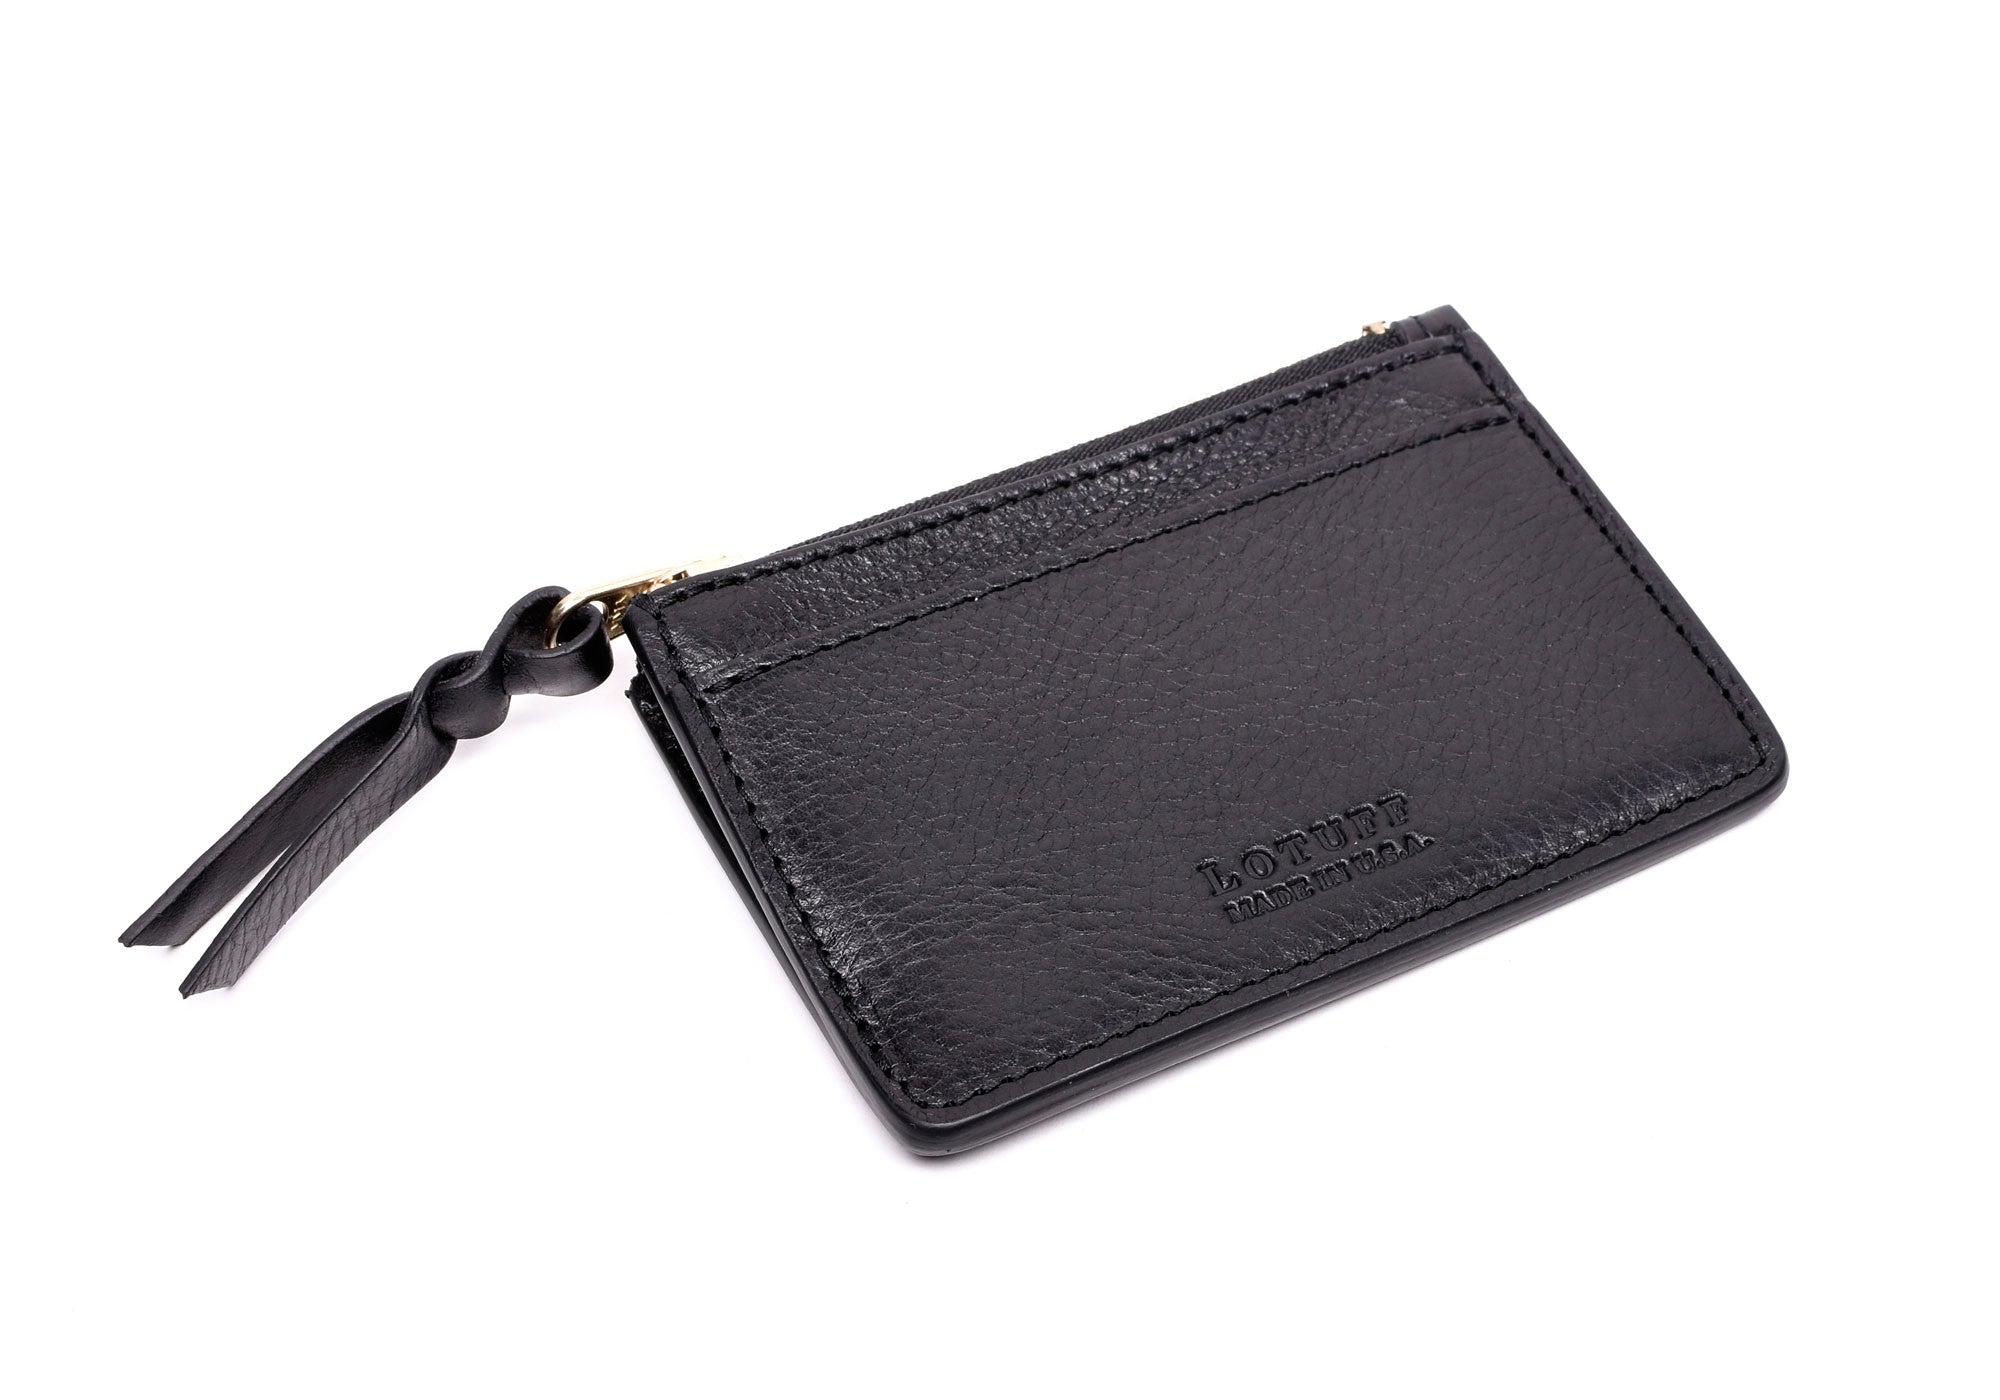 Front View of Zipper Credit Card Wallet Black